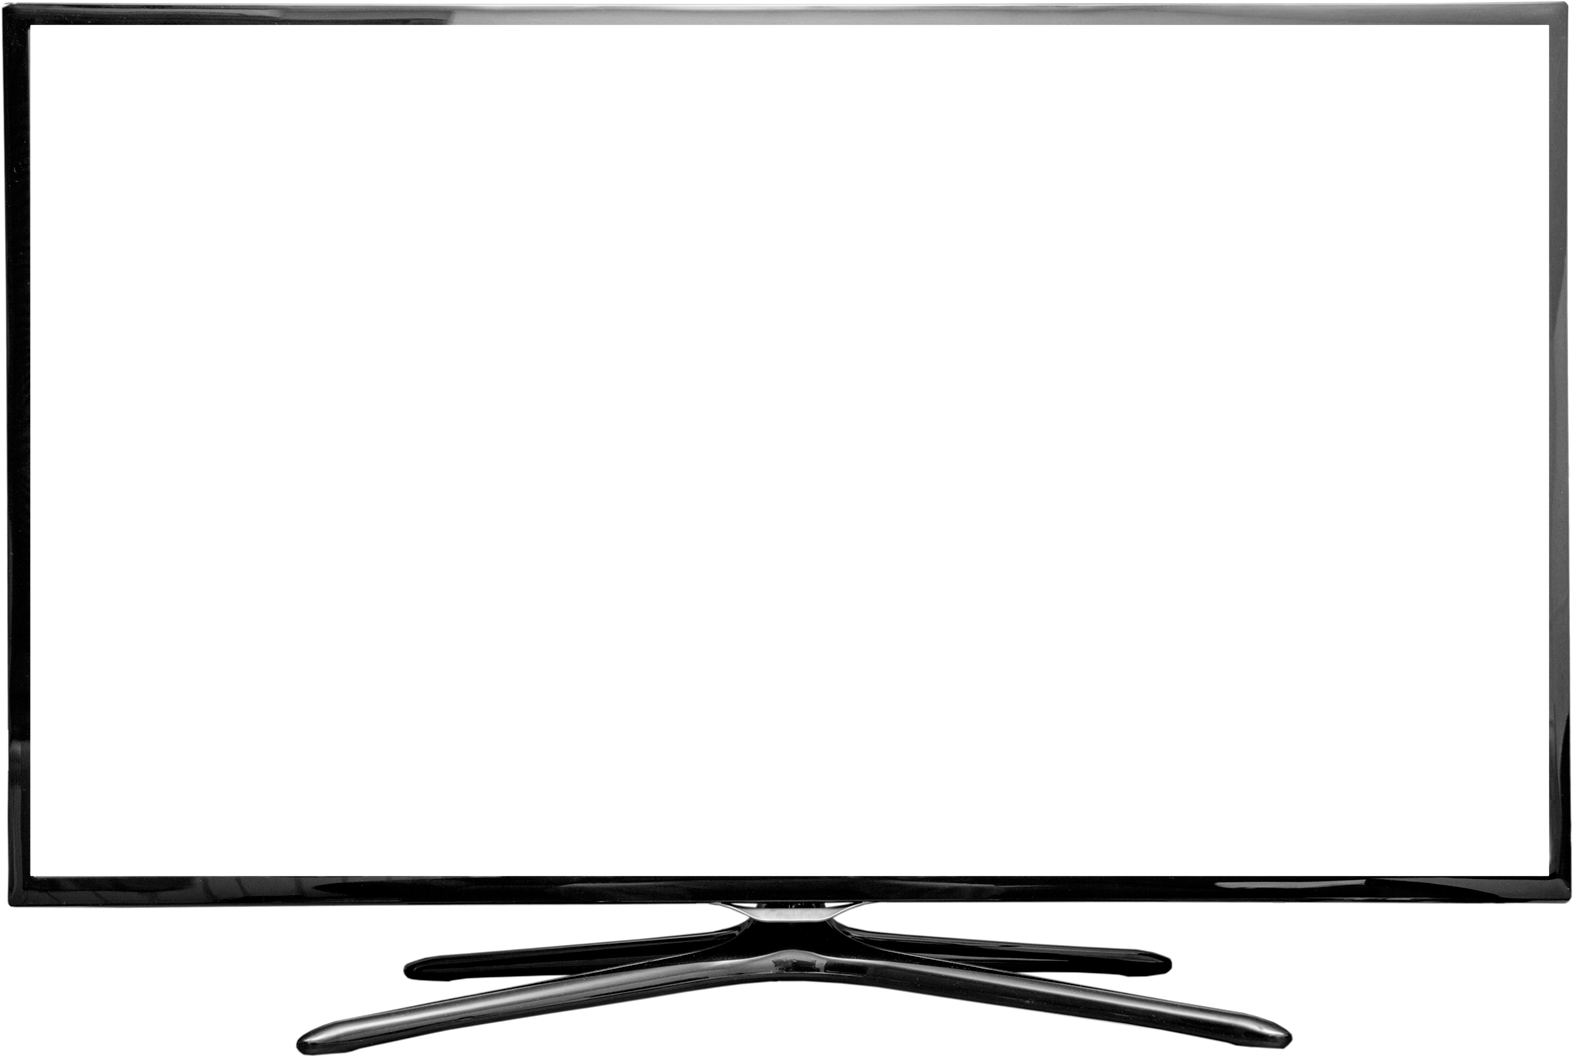 Led Television Png Image Purepng Free Transpa Cc0 Library